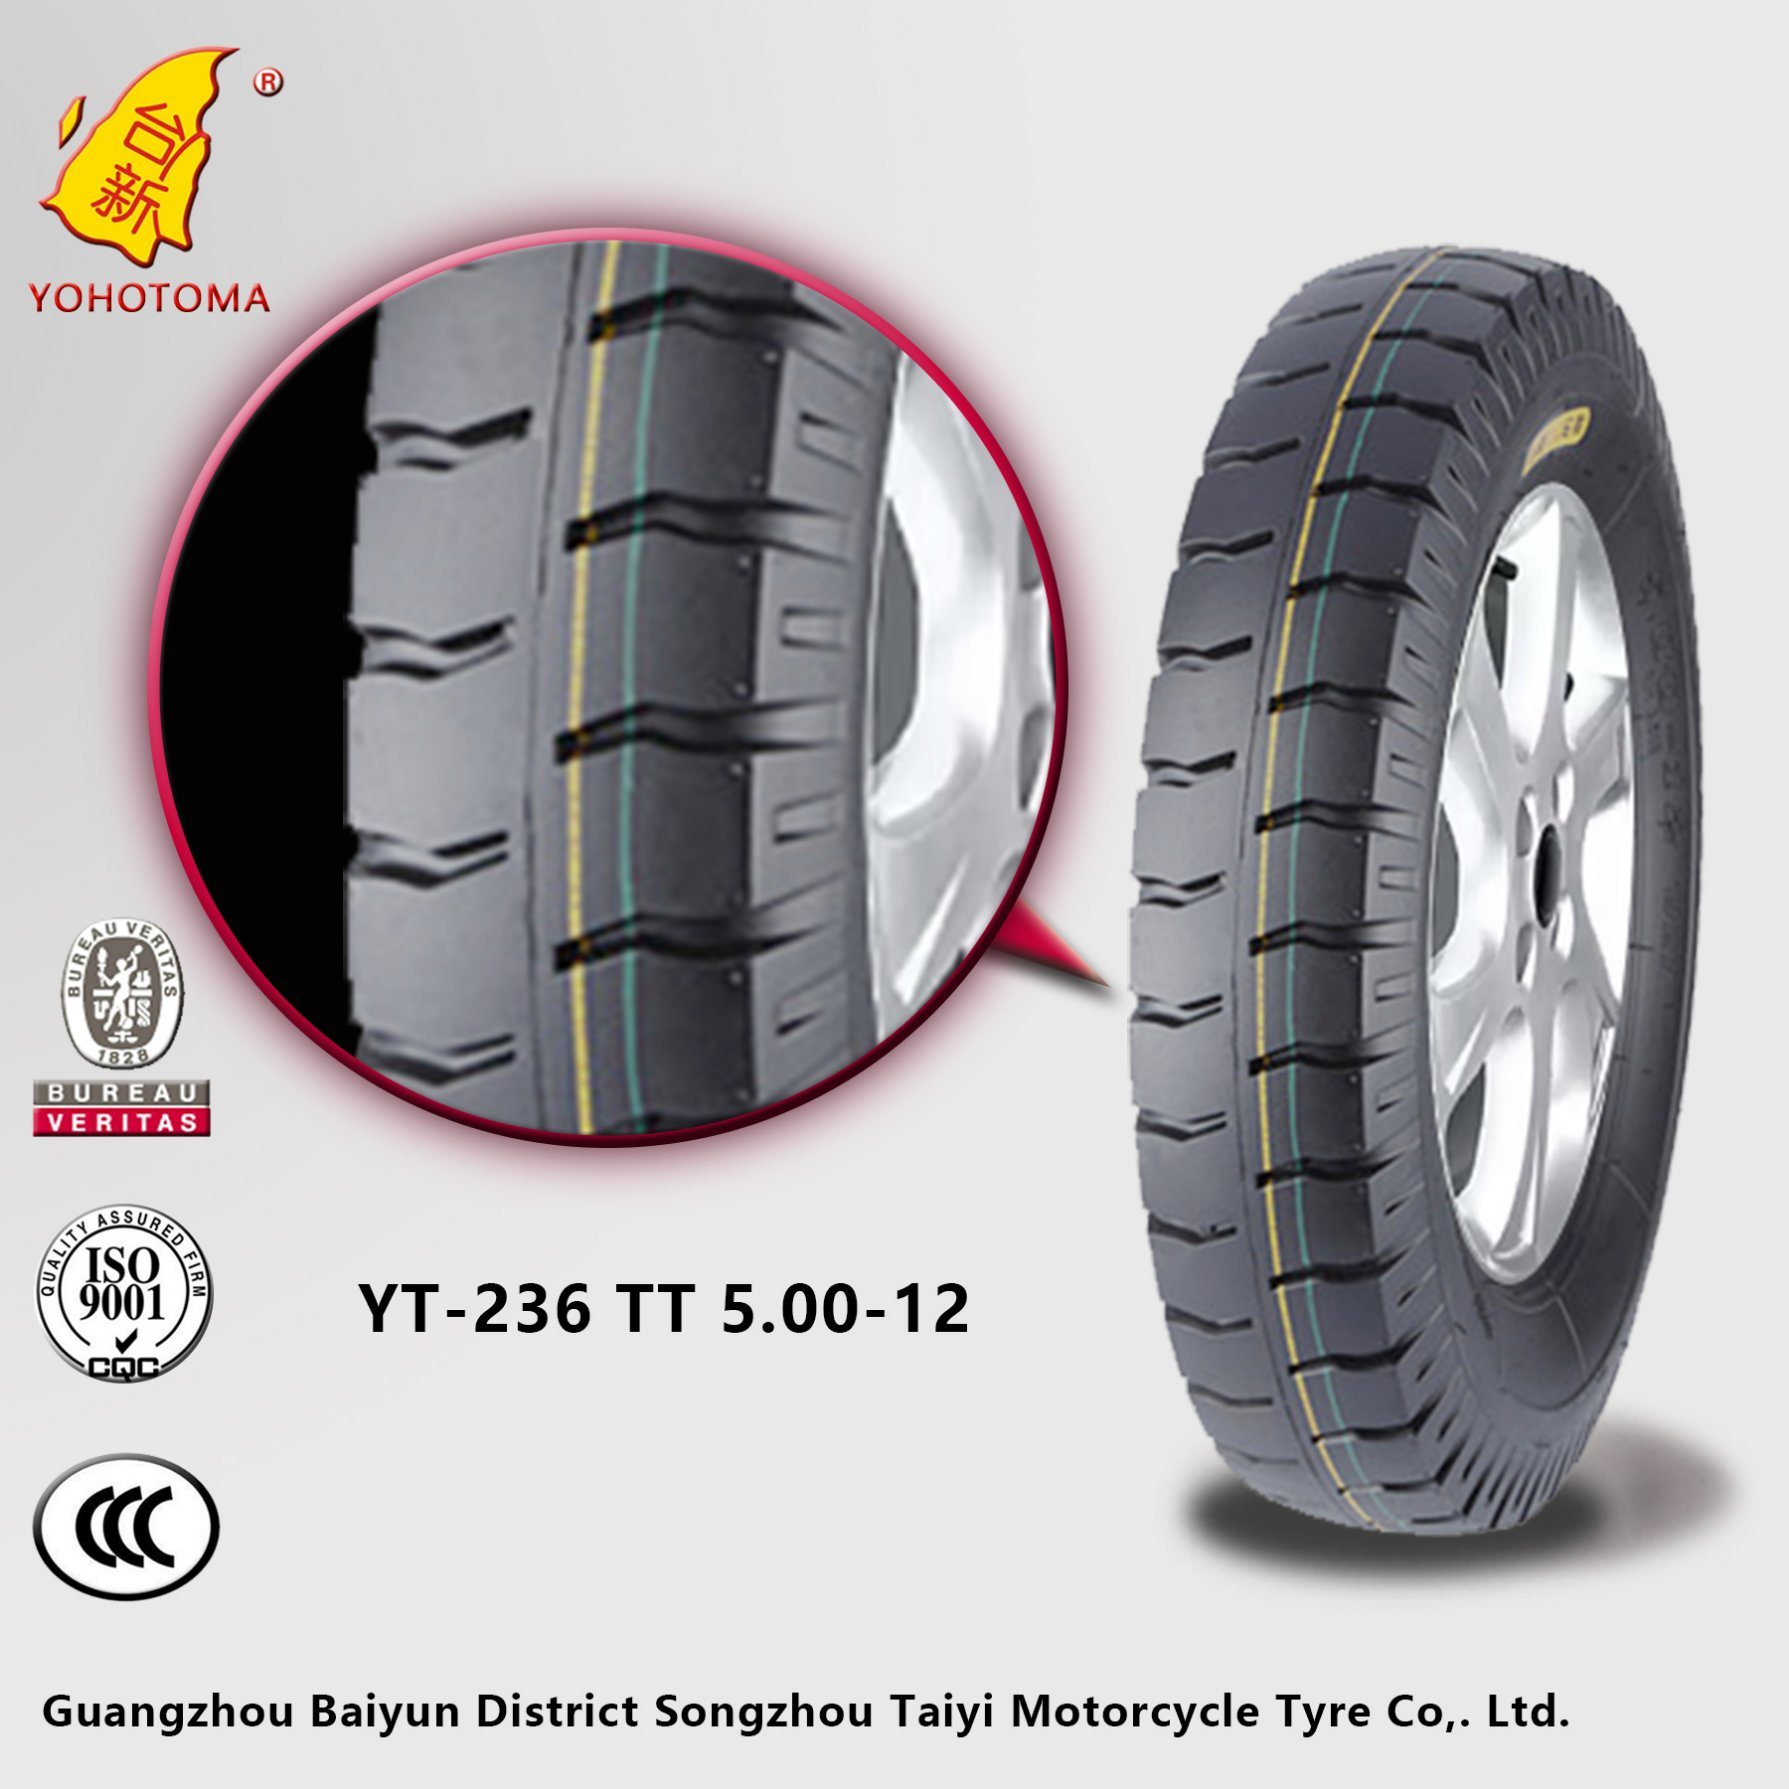 High Quality Tricycle Tyre for Africa Market (YT3) 500-12 Yt-236 Tt